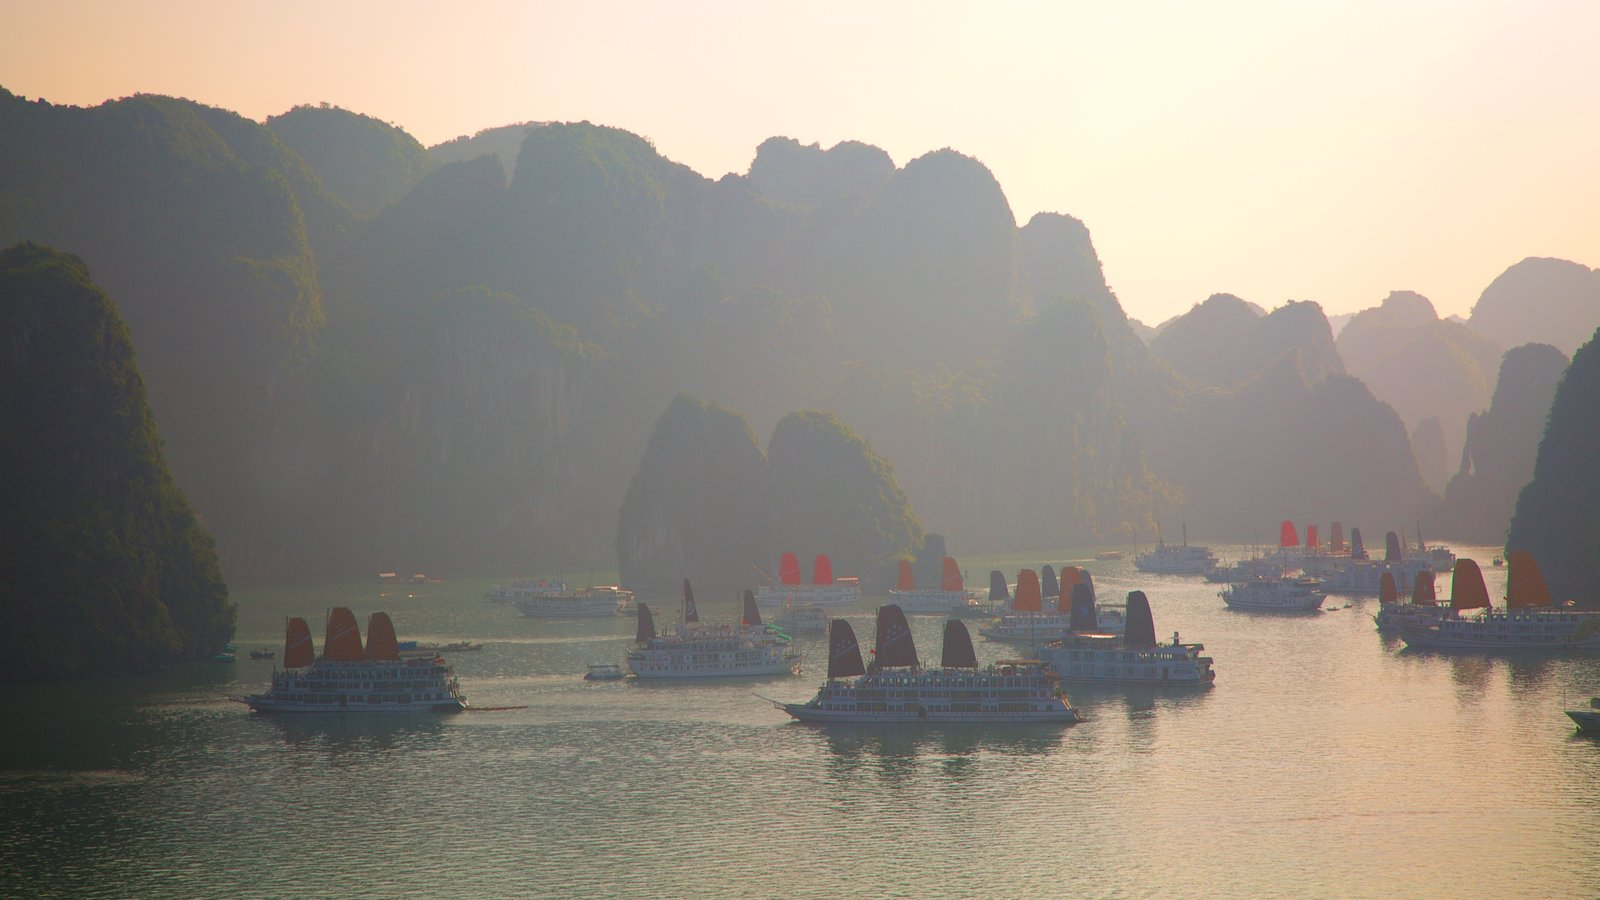 Halong Bay which includes a bay or harbor and mountains